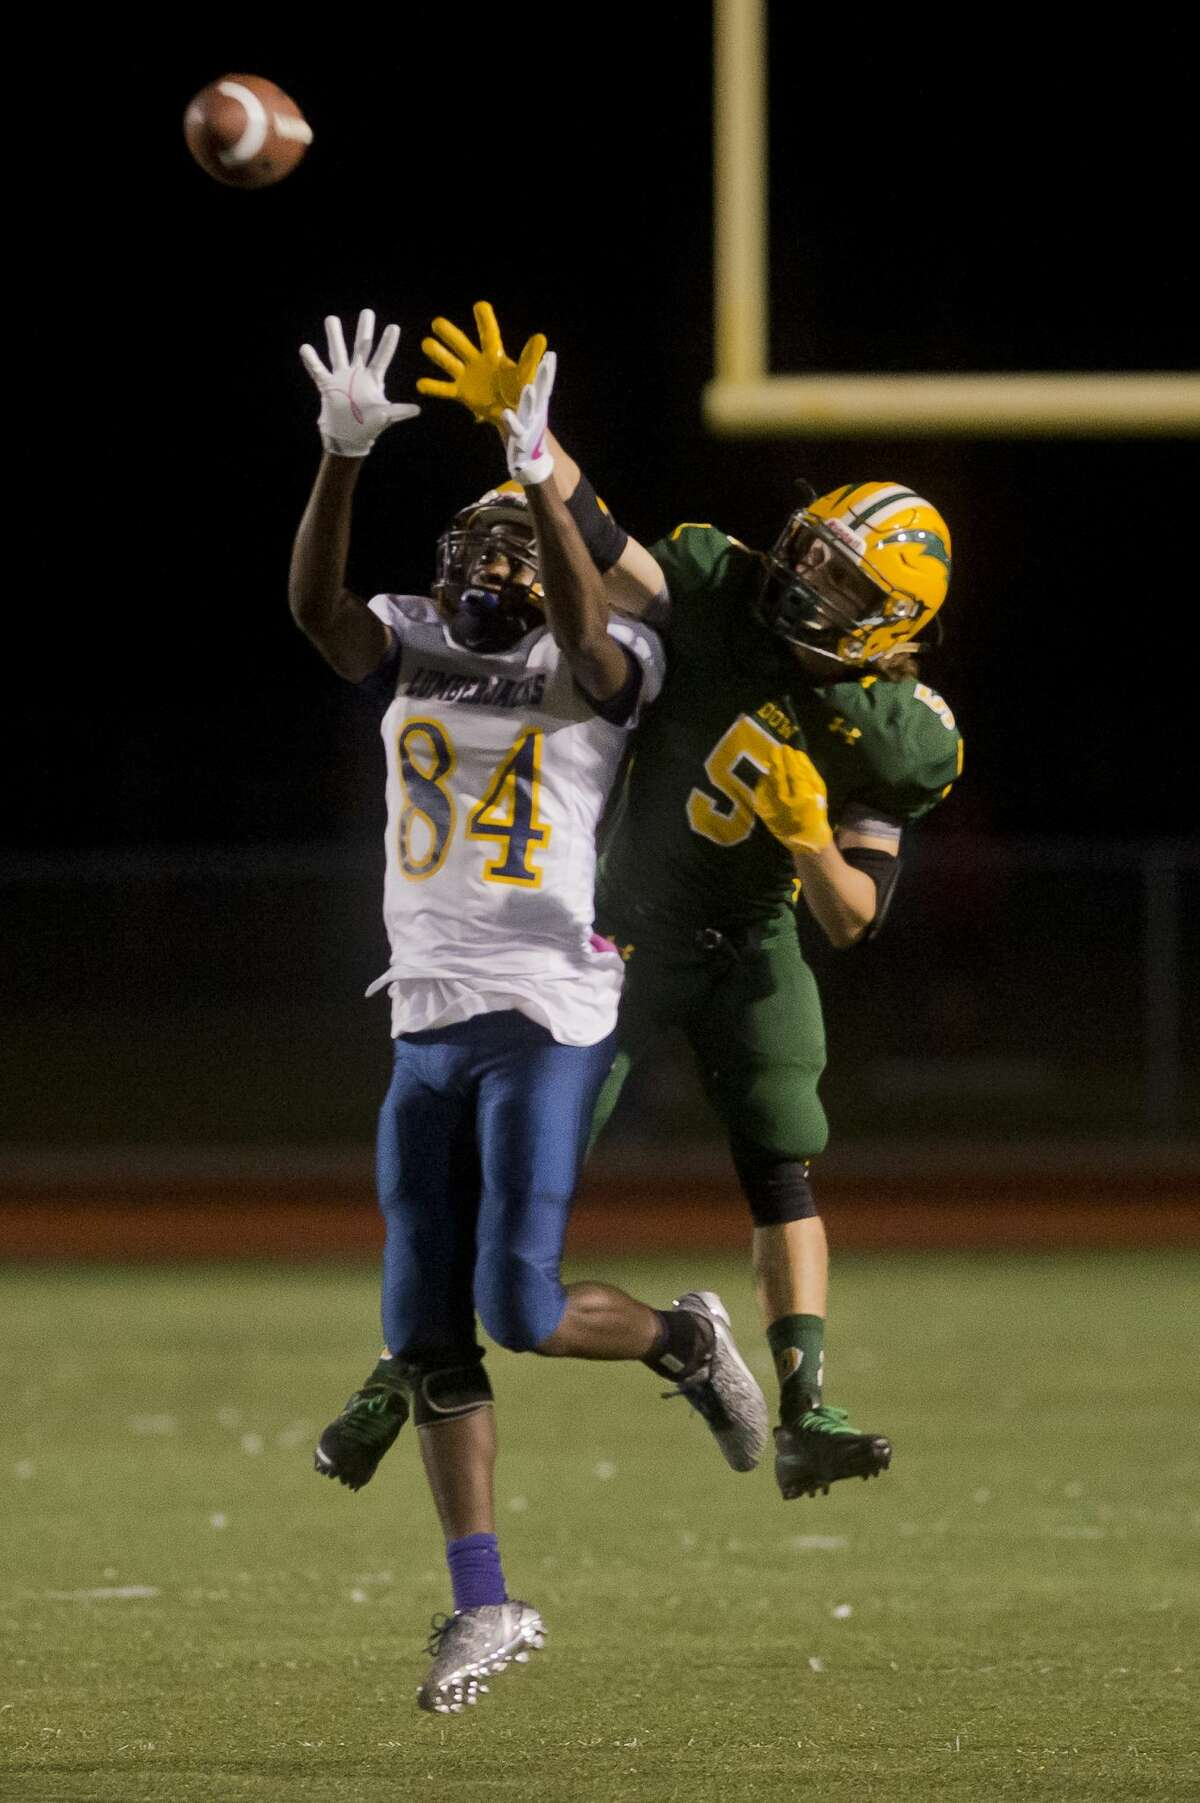 Dow junior Chase Perry attempts to block a pass thrown to Arthur Hill senior Andre Jackson during a game on Friday, Oct. 6, 2017 at Midland Community Stadium. (Katy Kildee/kkildee@mdn.net)